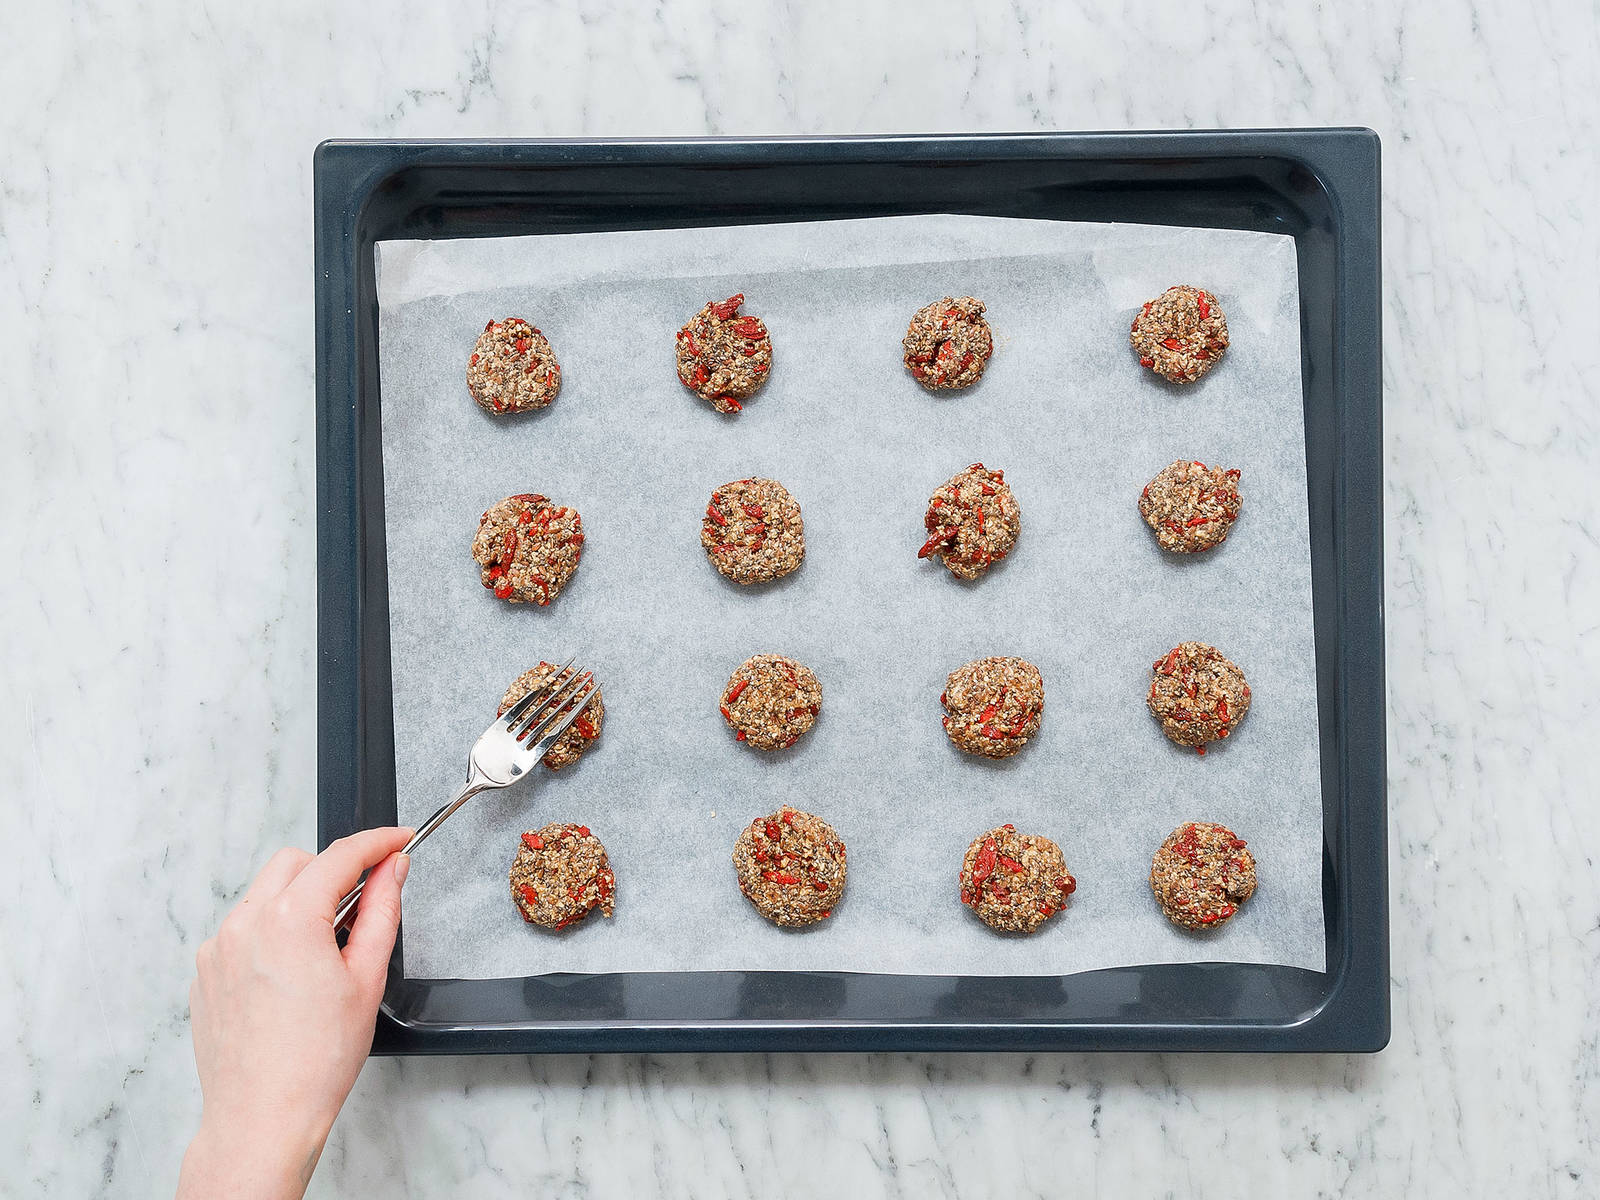 Slightly wet your hands with water. Portion the dough with a teaspoon and roll it with your hands to form small balls. Add to a parchment-lined baking sheet and gently flatten with a fork. Bake at 180°C/350°F on the middle rack for approx. 8 – 10 min. Remove from oven and let cool.